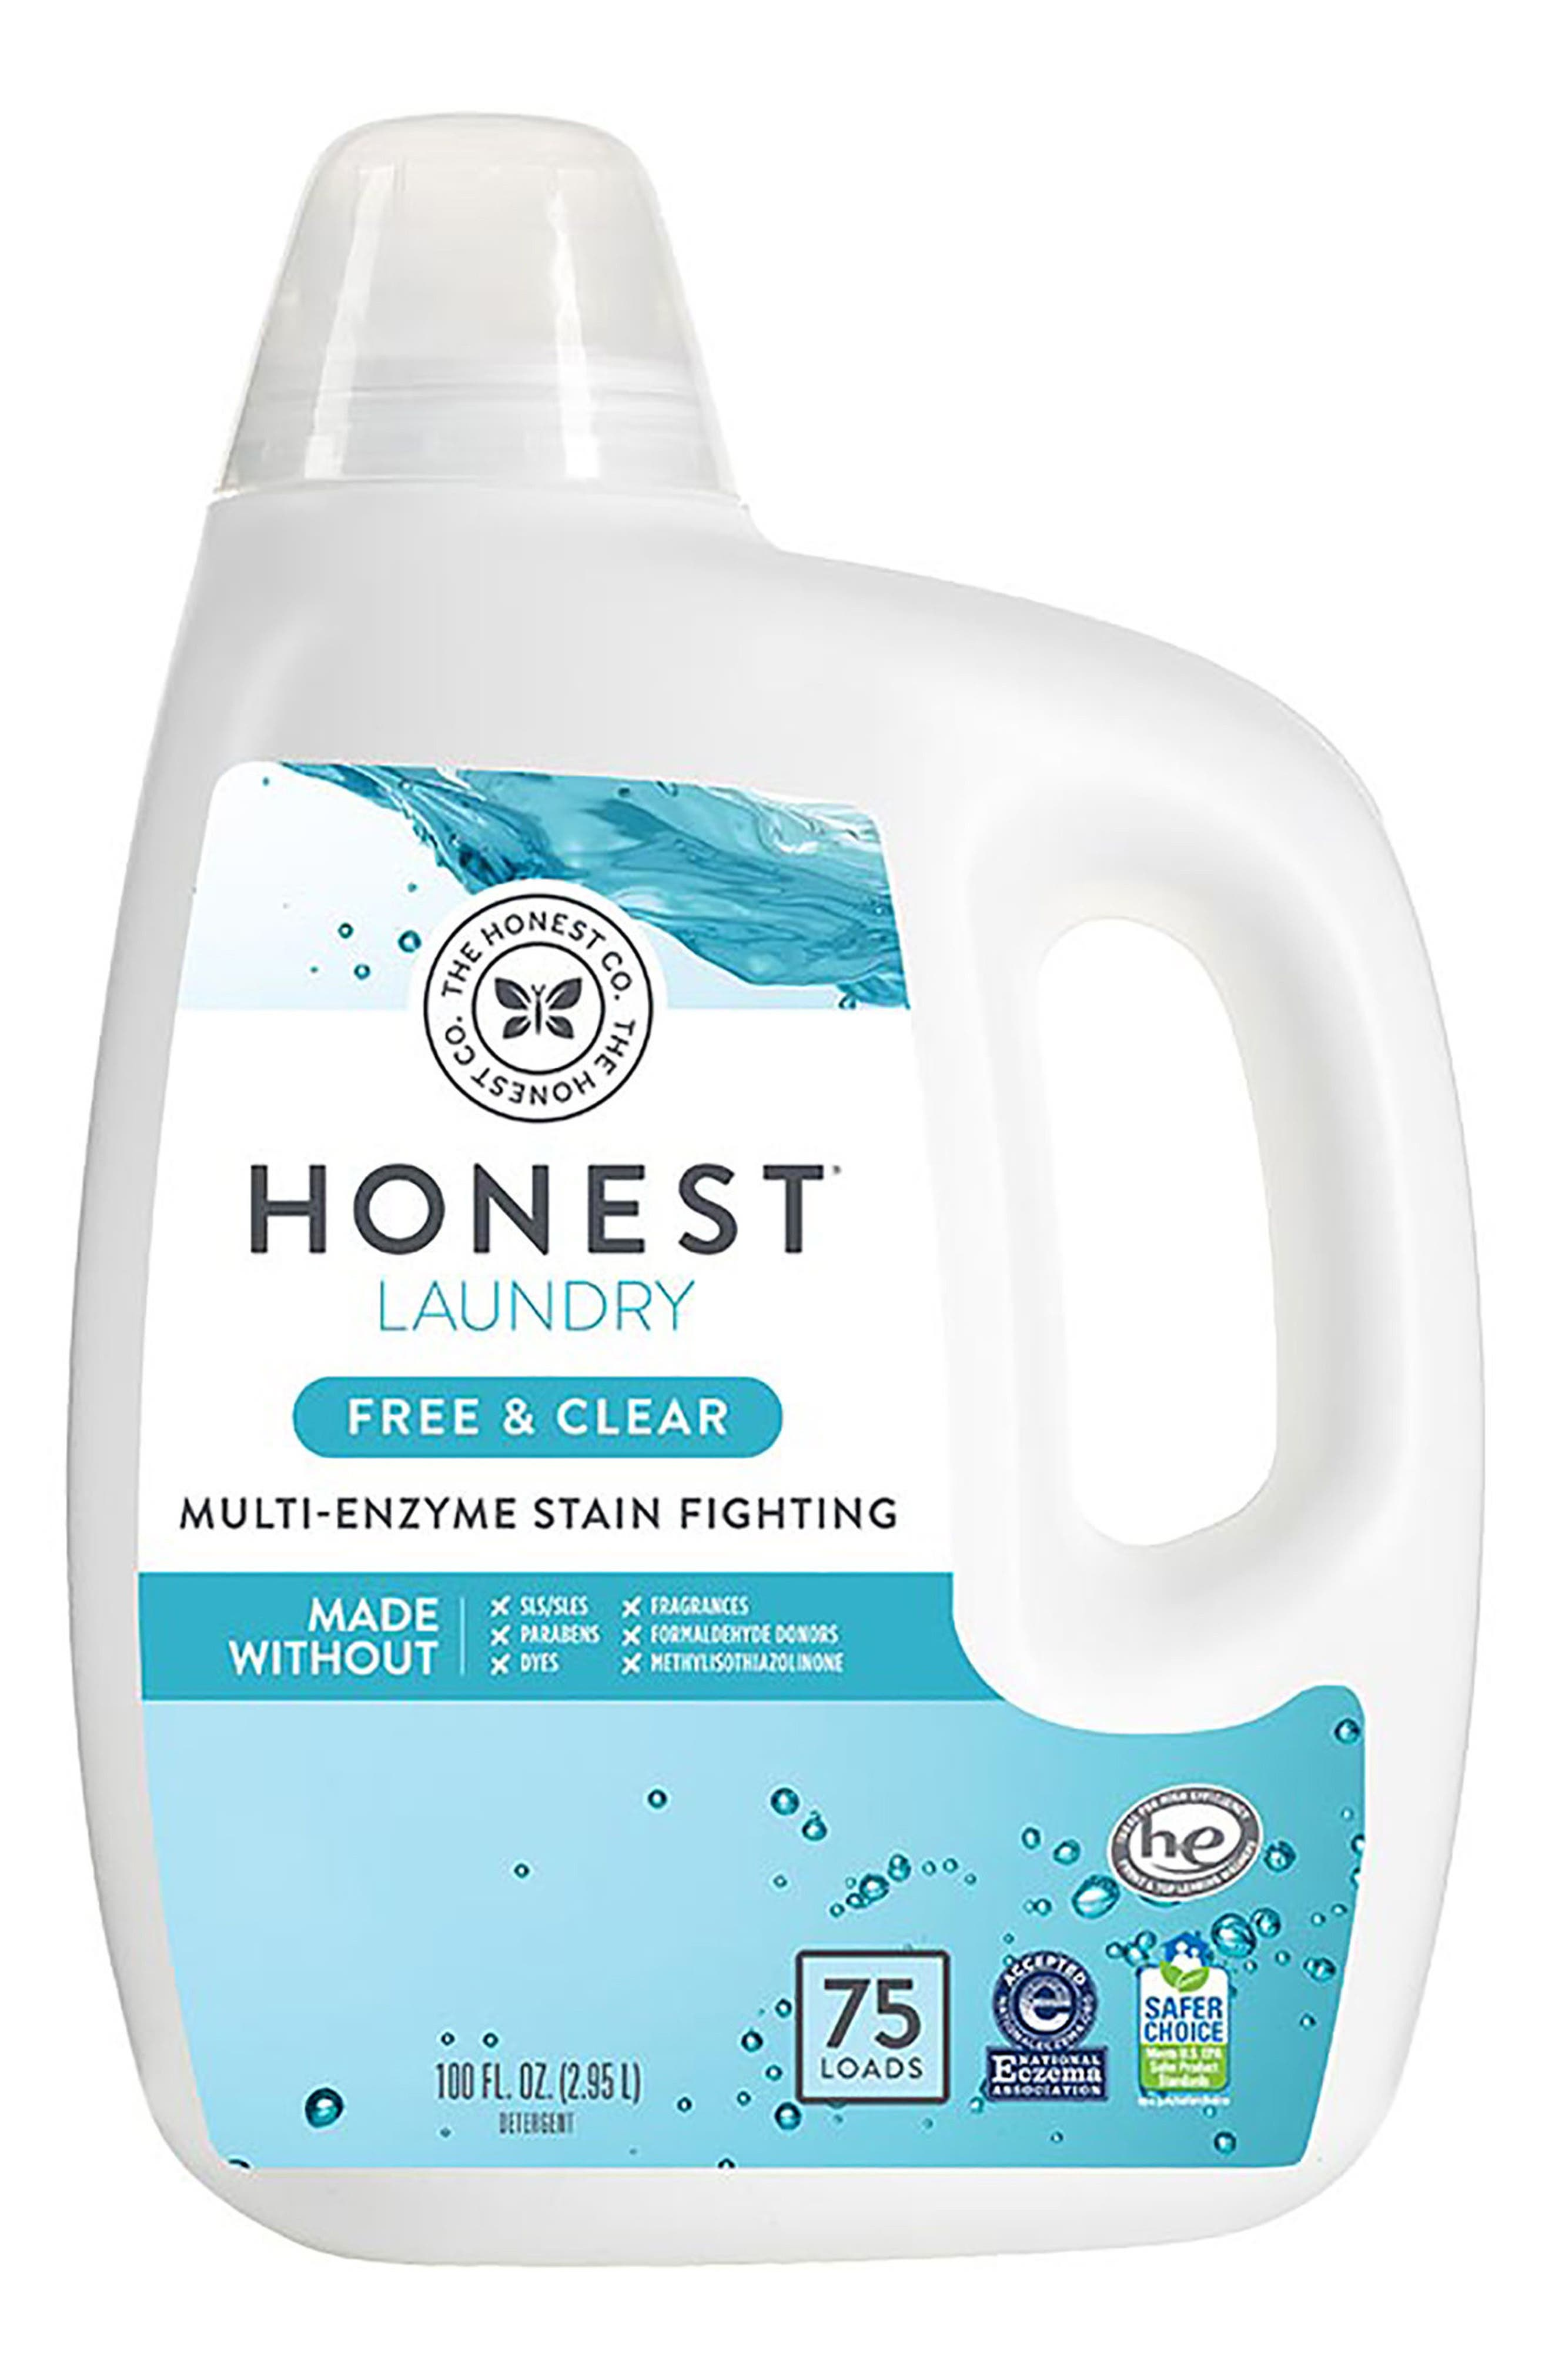 The Honest Company Free & Clear Laundry Detergent